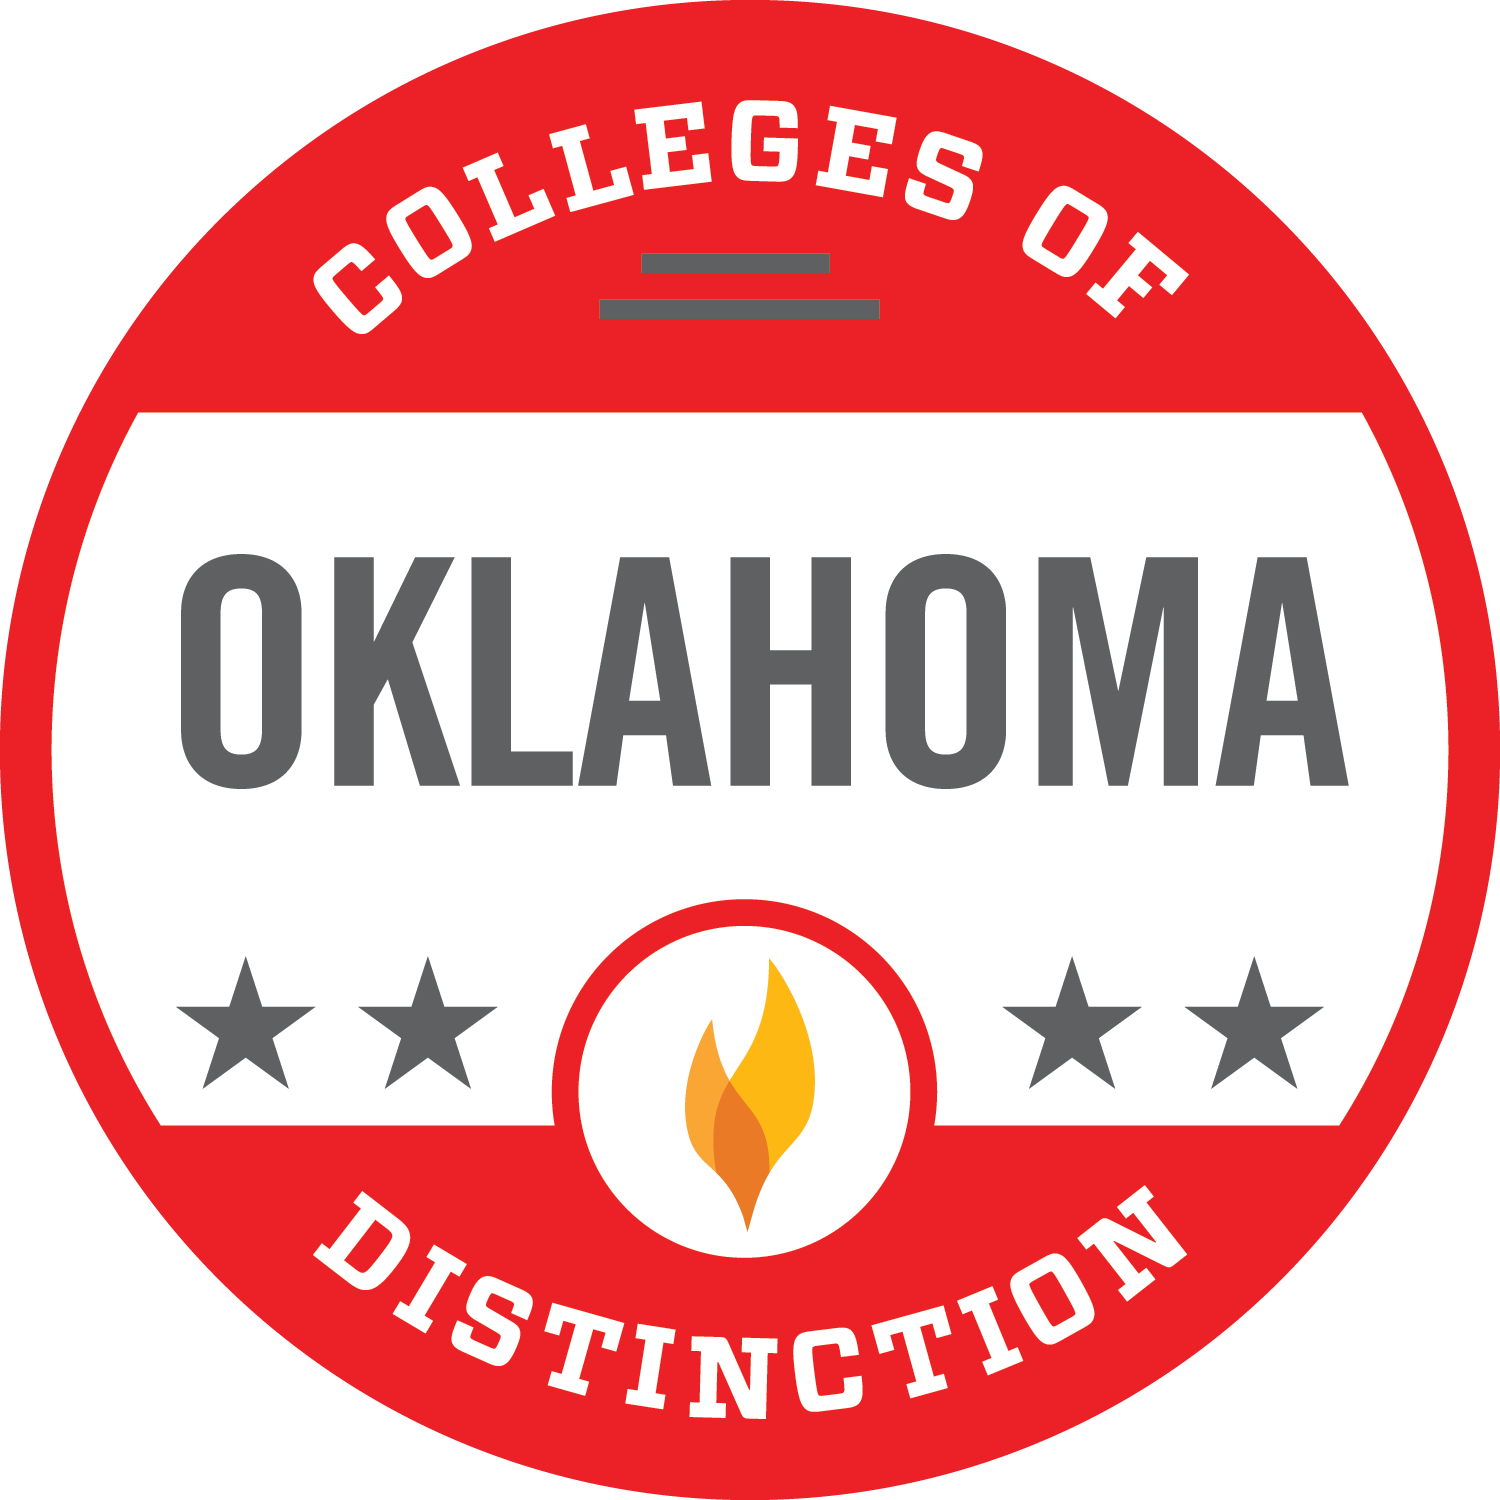 Oklahoma College of Distinction